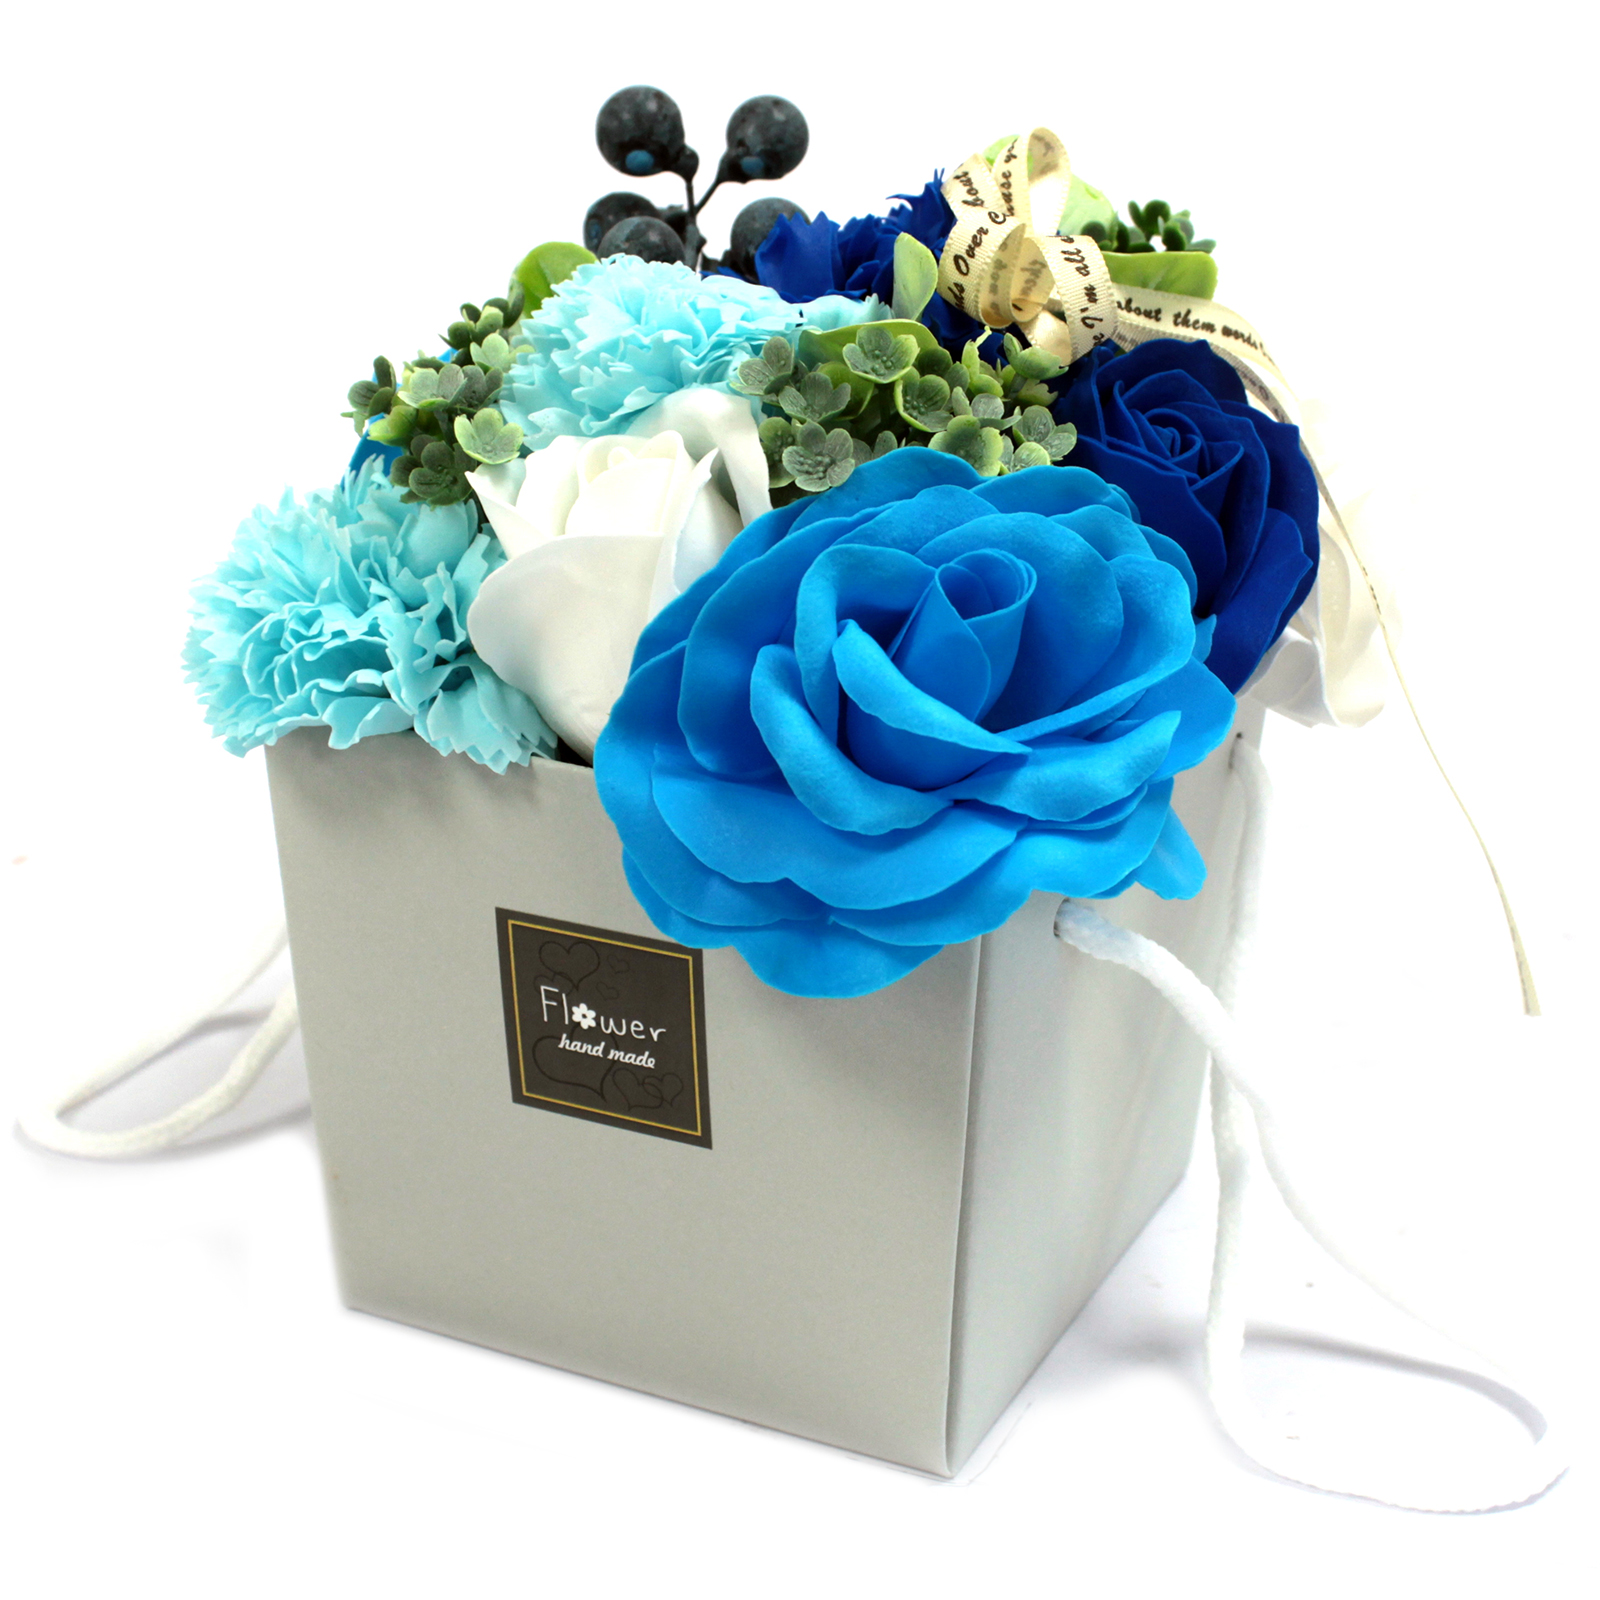 1x Soap Flower Bouqet - Blue Wedding